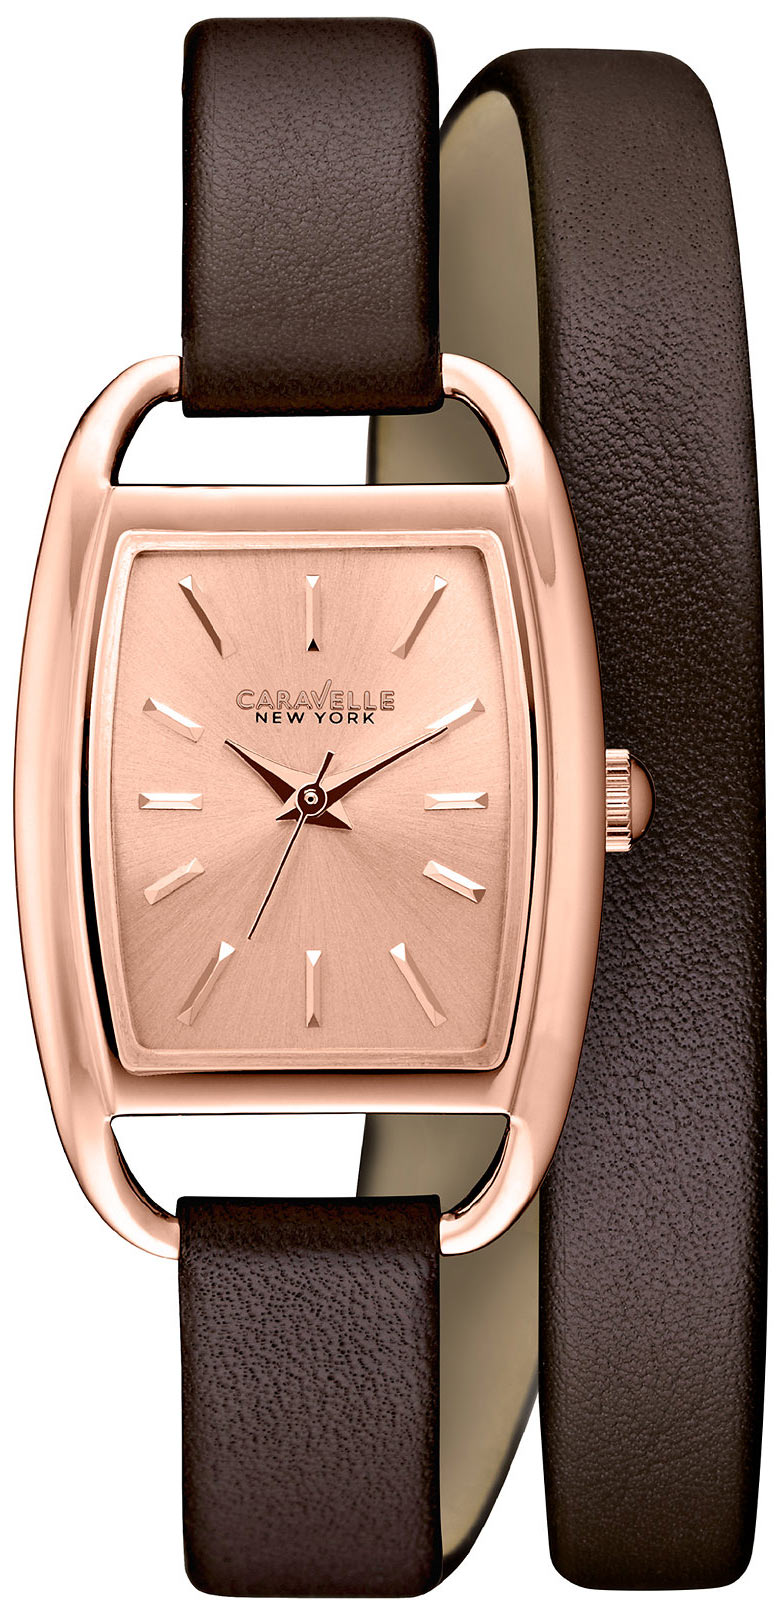 Caravelle New York 44L123 Women's Analog Watch Wra